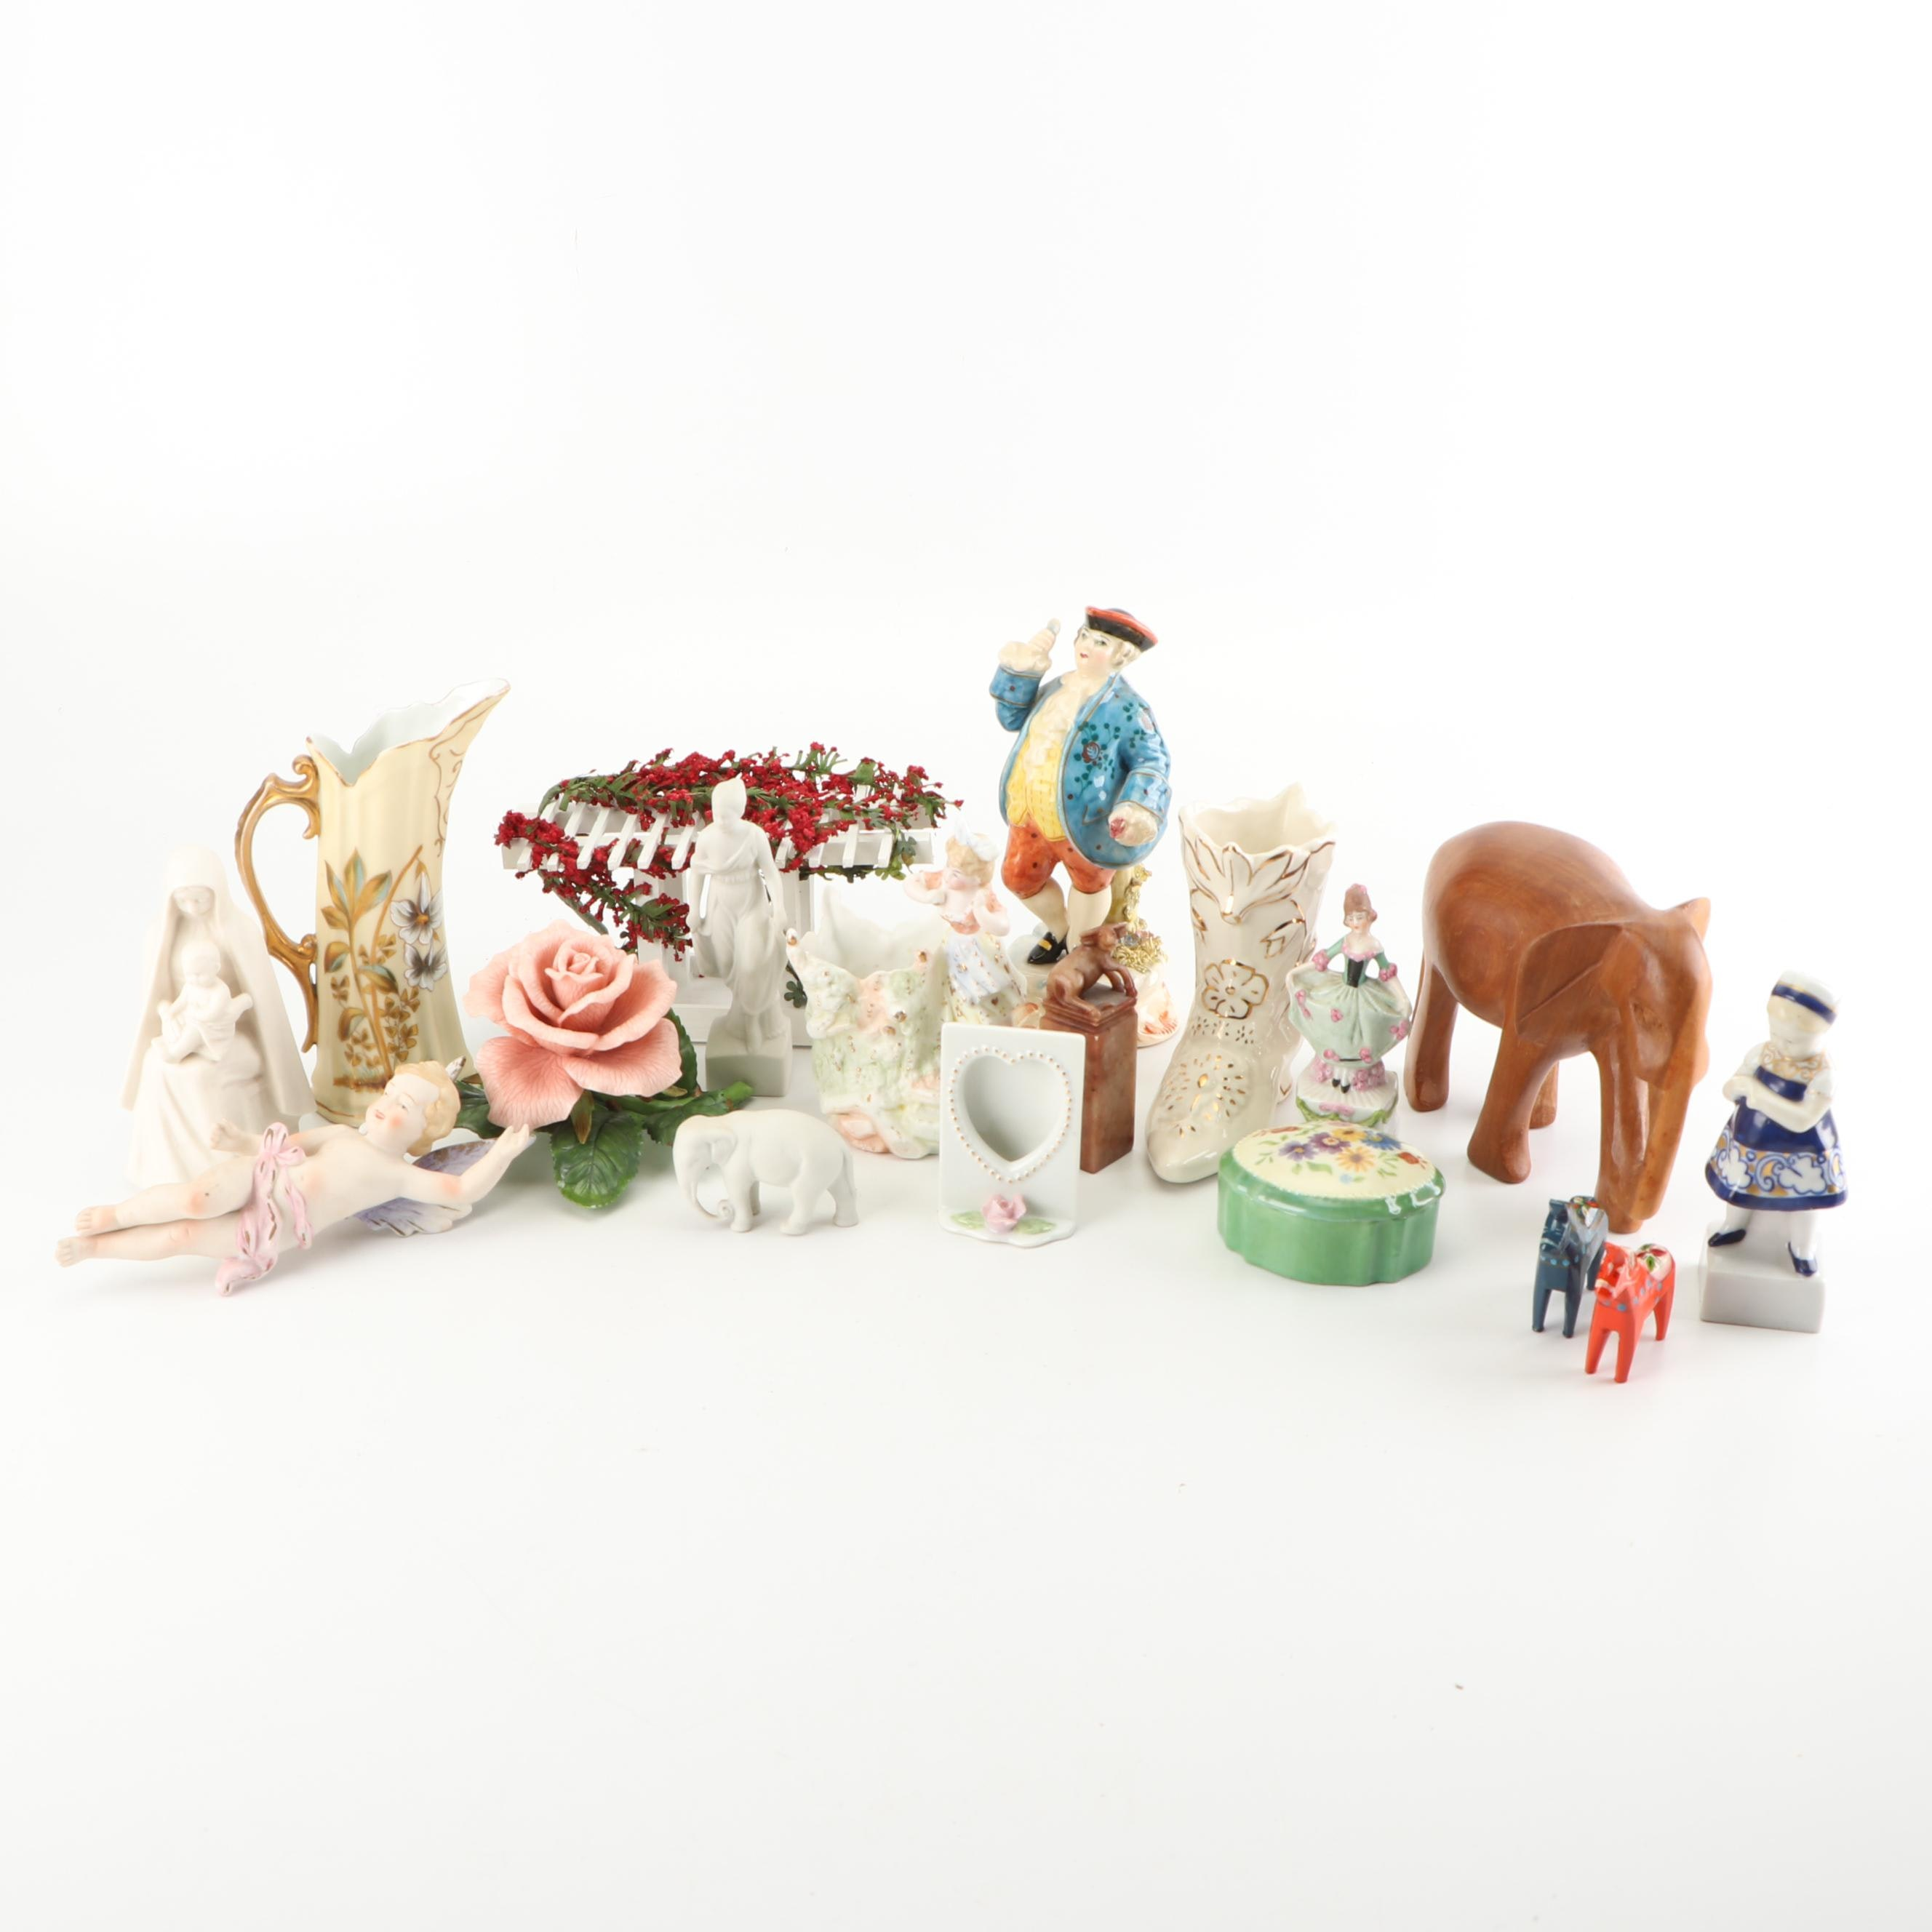 Hand-Painted Porcelain and Wood Figurines and Decor